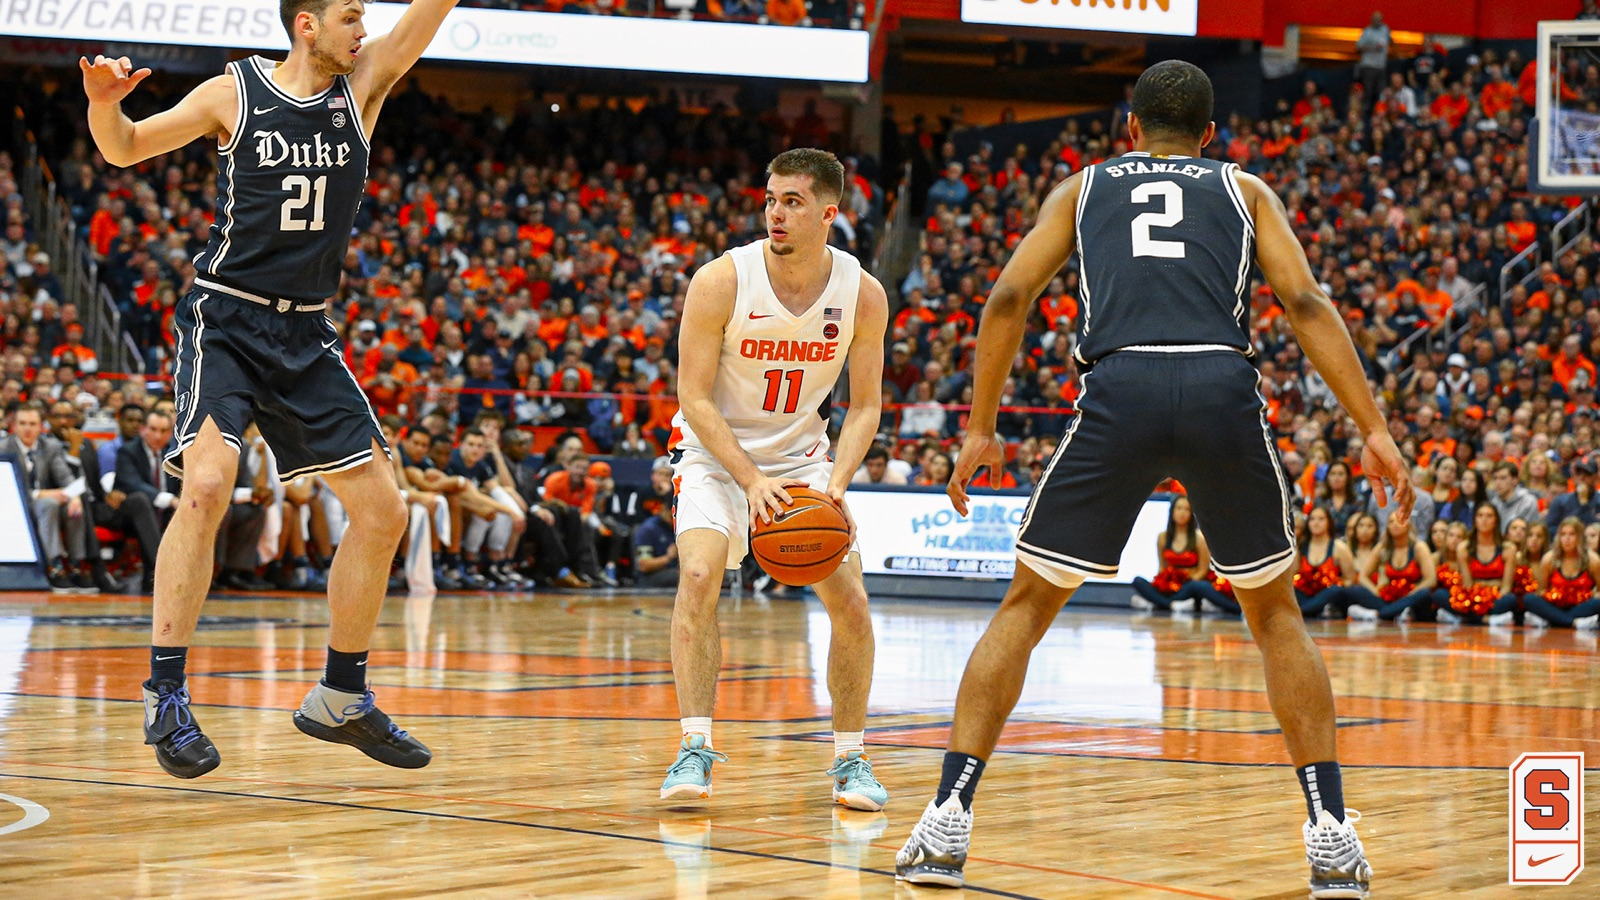 ORANGE GAME DAY: Syracuse welcomes Duke to the Dome tonight (preview & info)